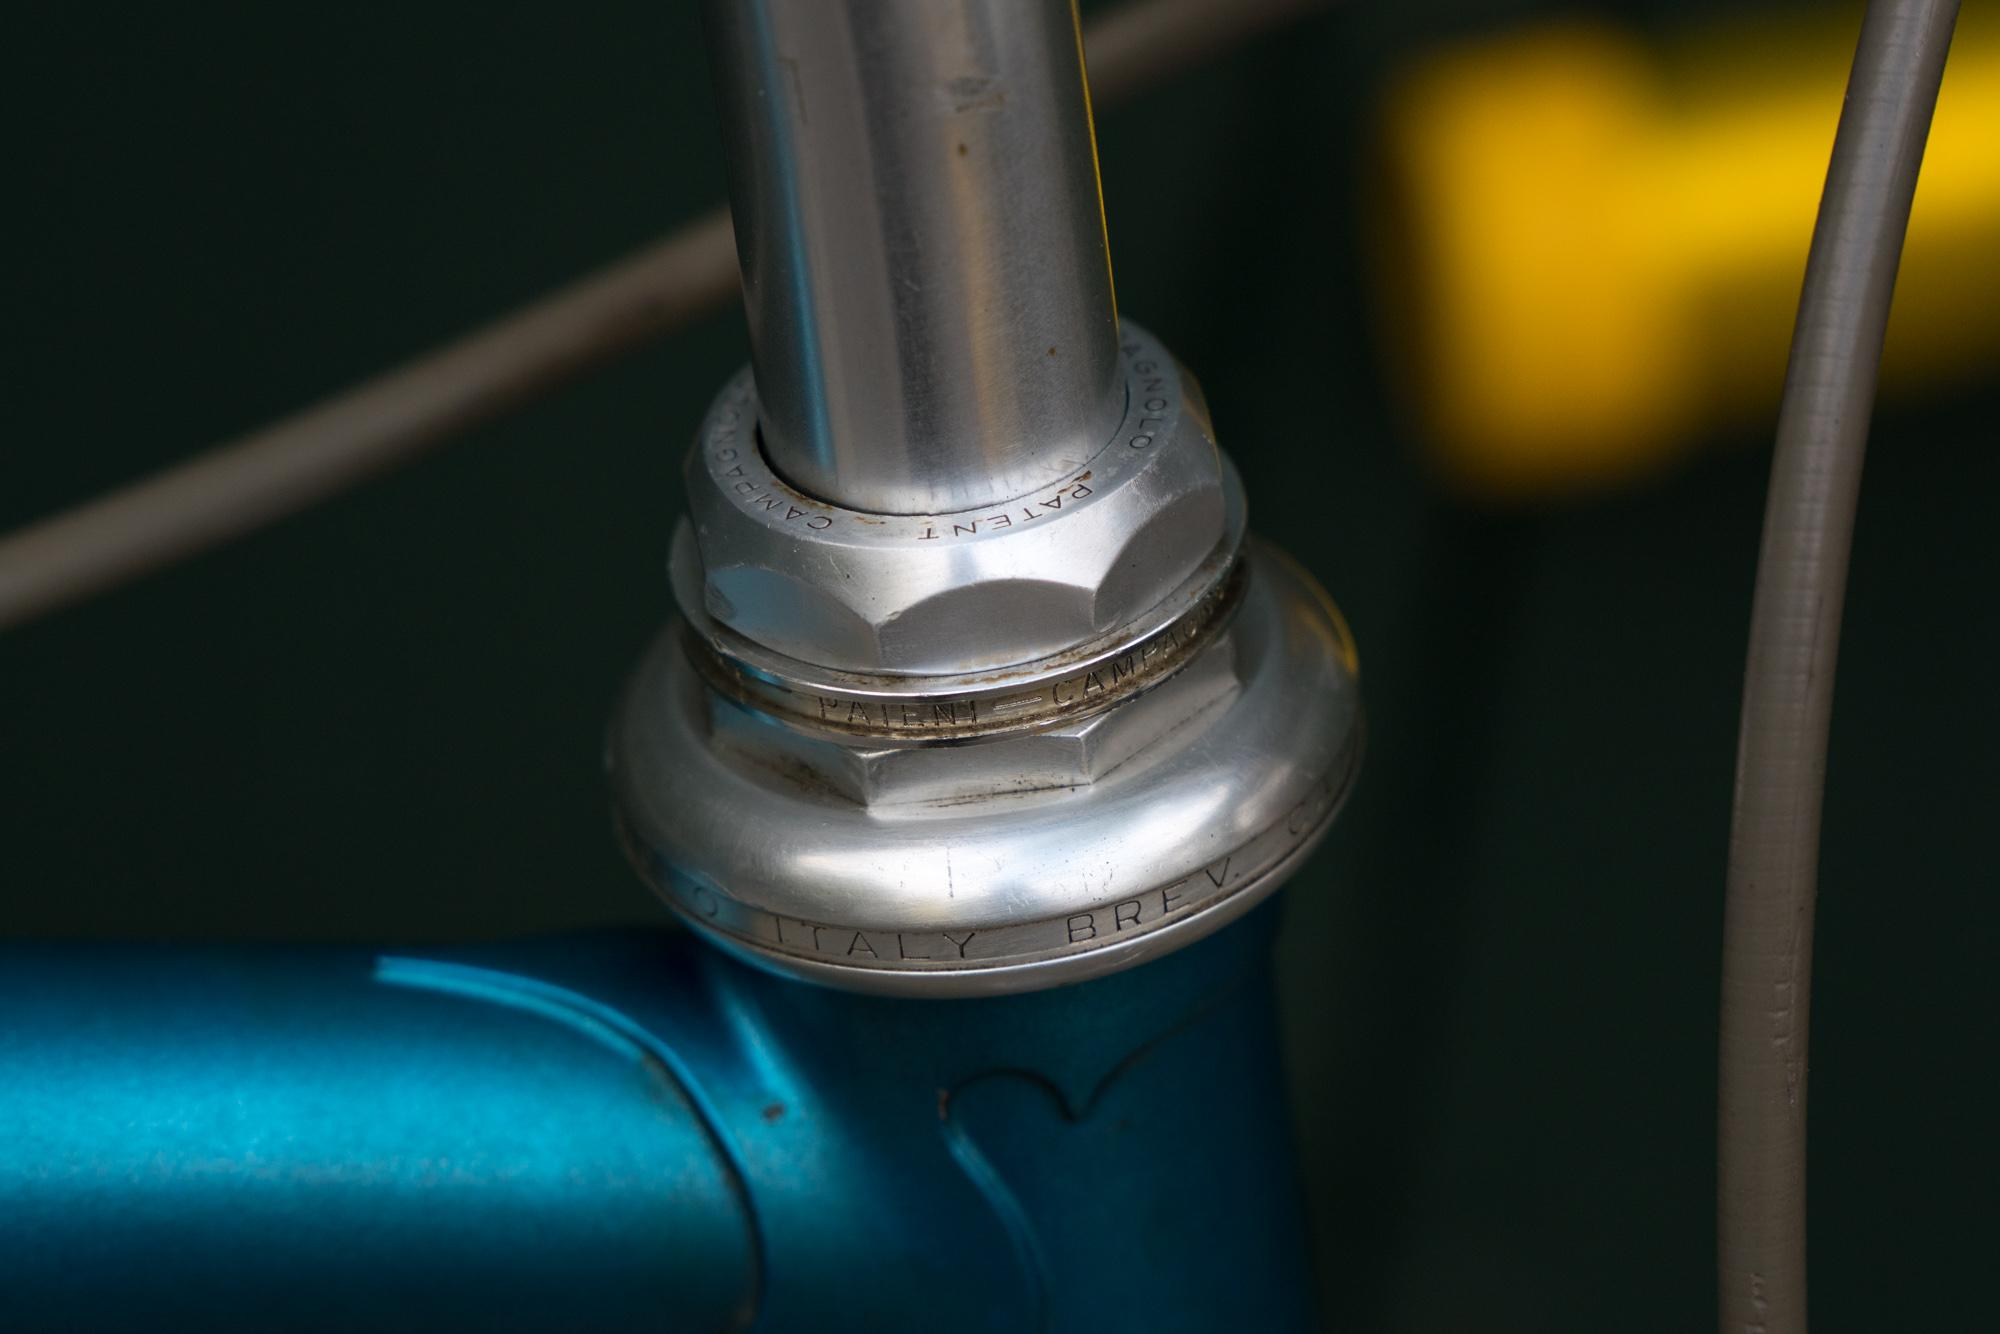 Johns Cool Colnago Coolnago (27 of 27)